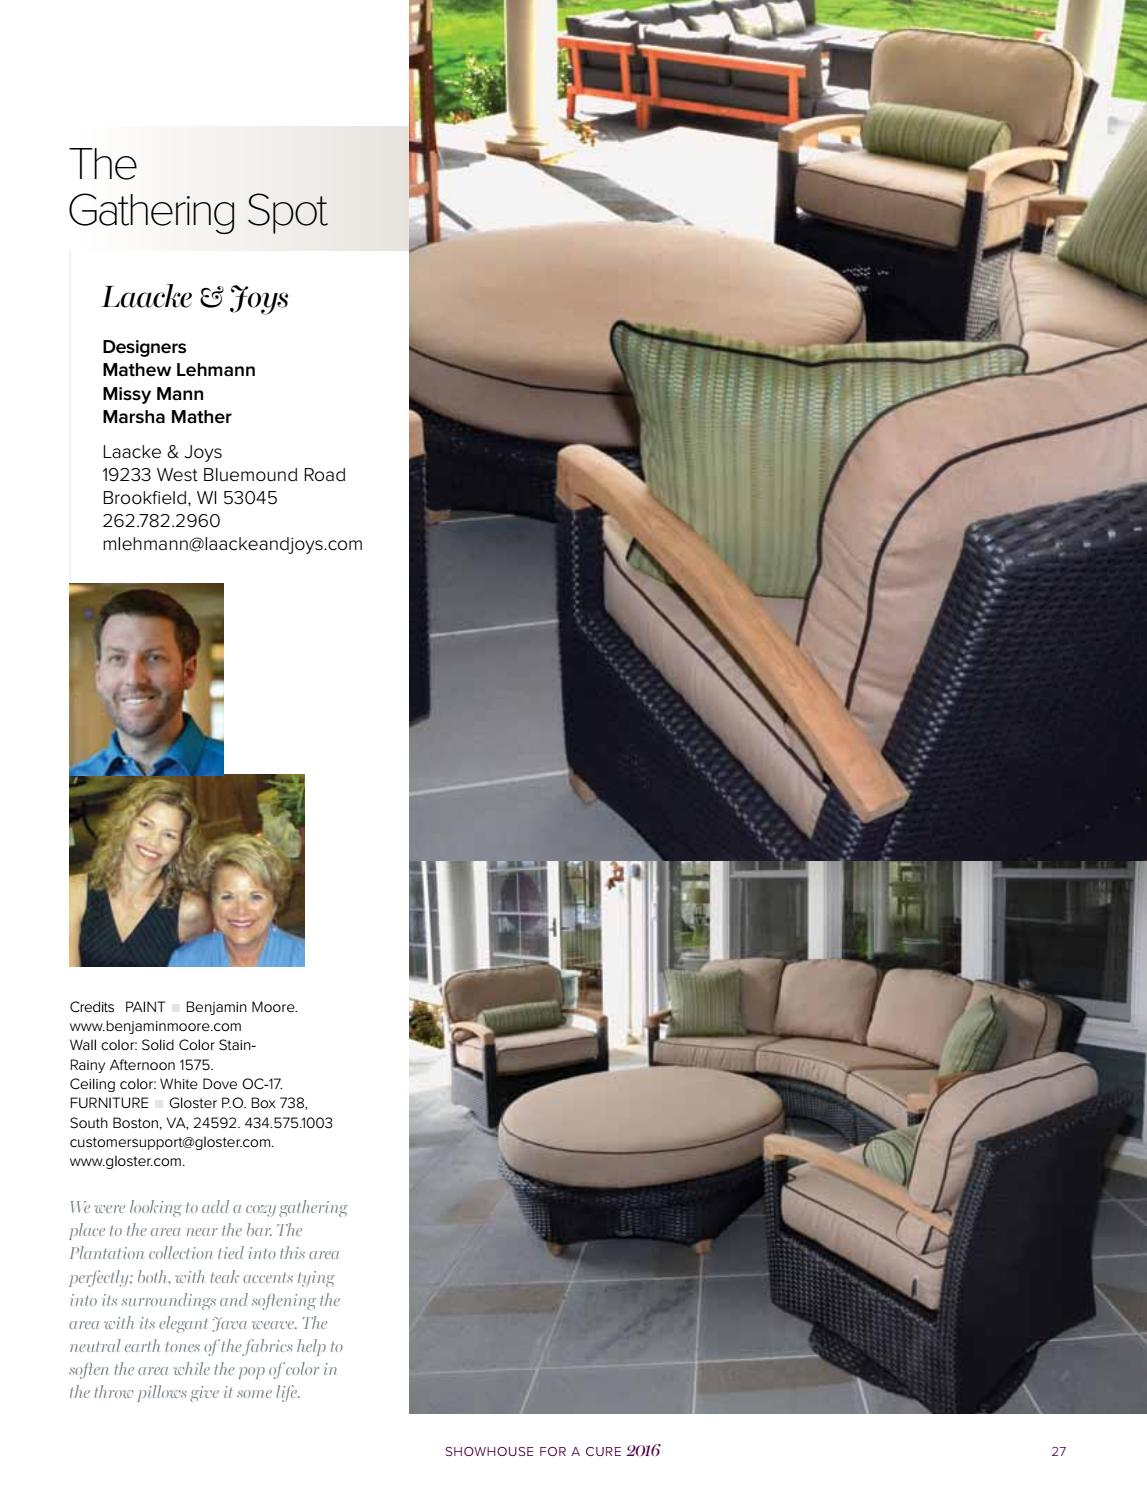 WISCONSIN BREAST CANCER SHOWHOUSE 2016 By Lifestyle Publishing   Issuu